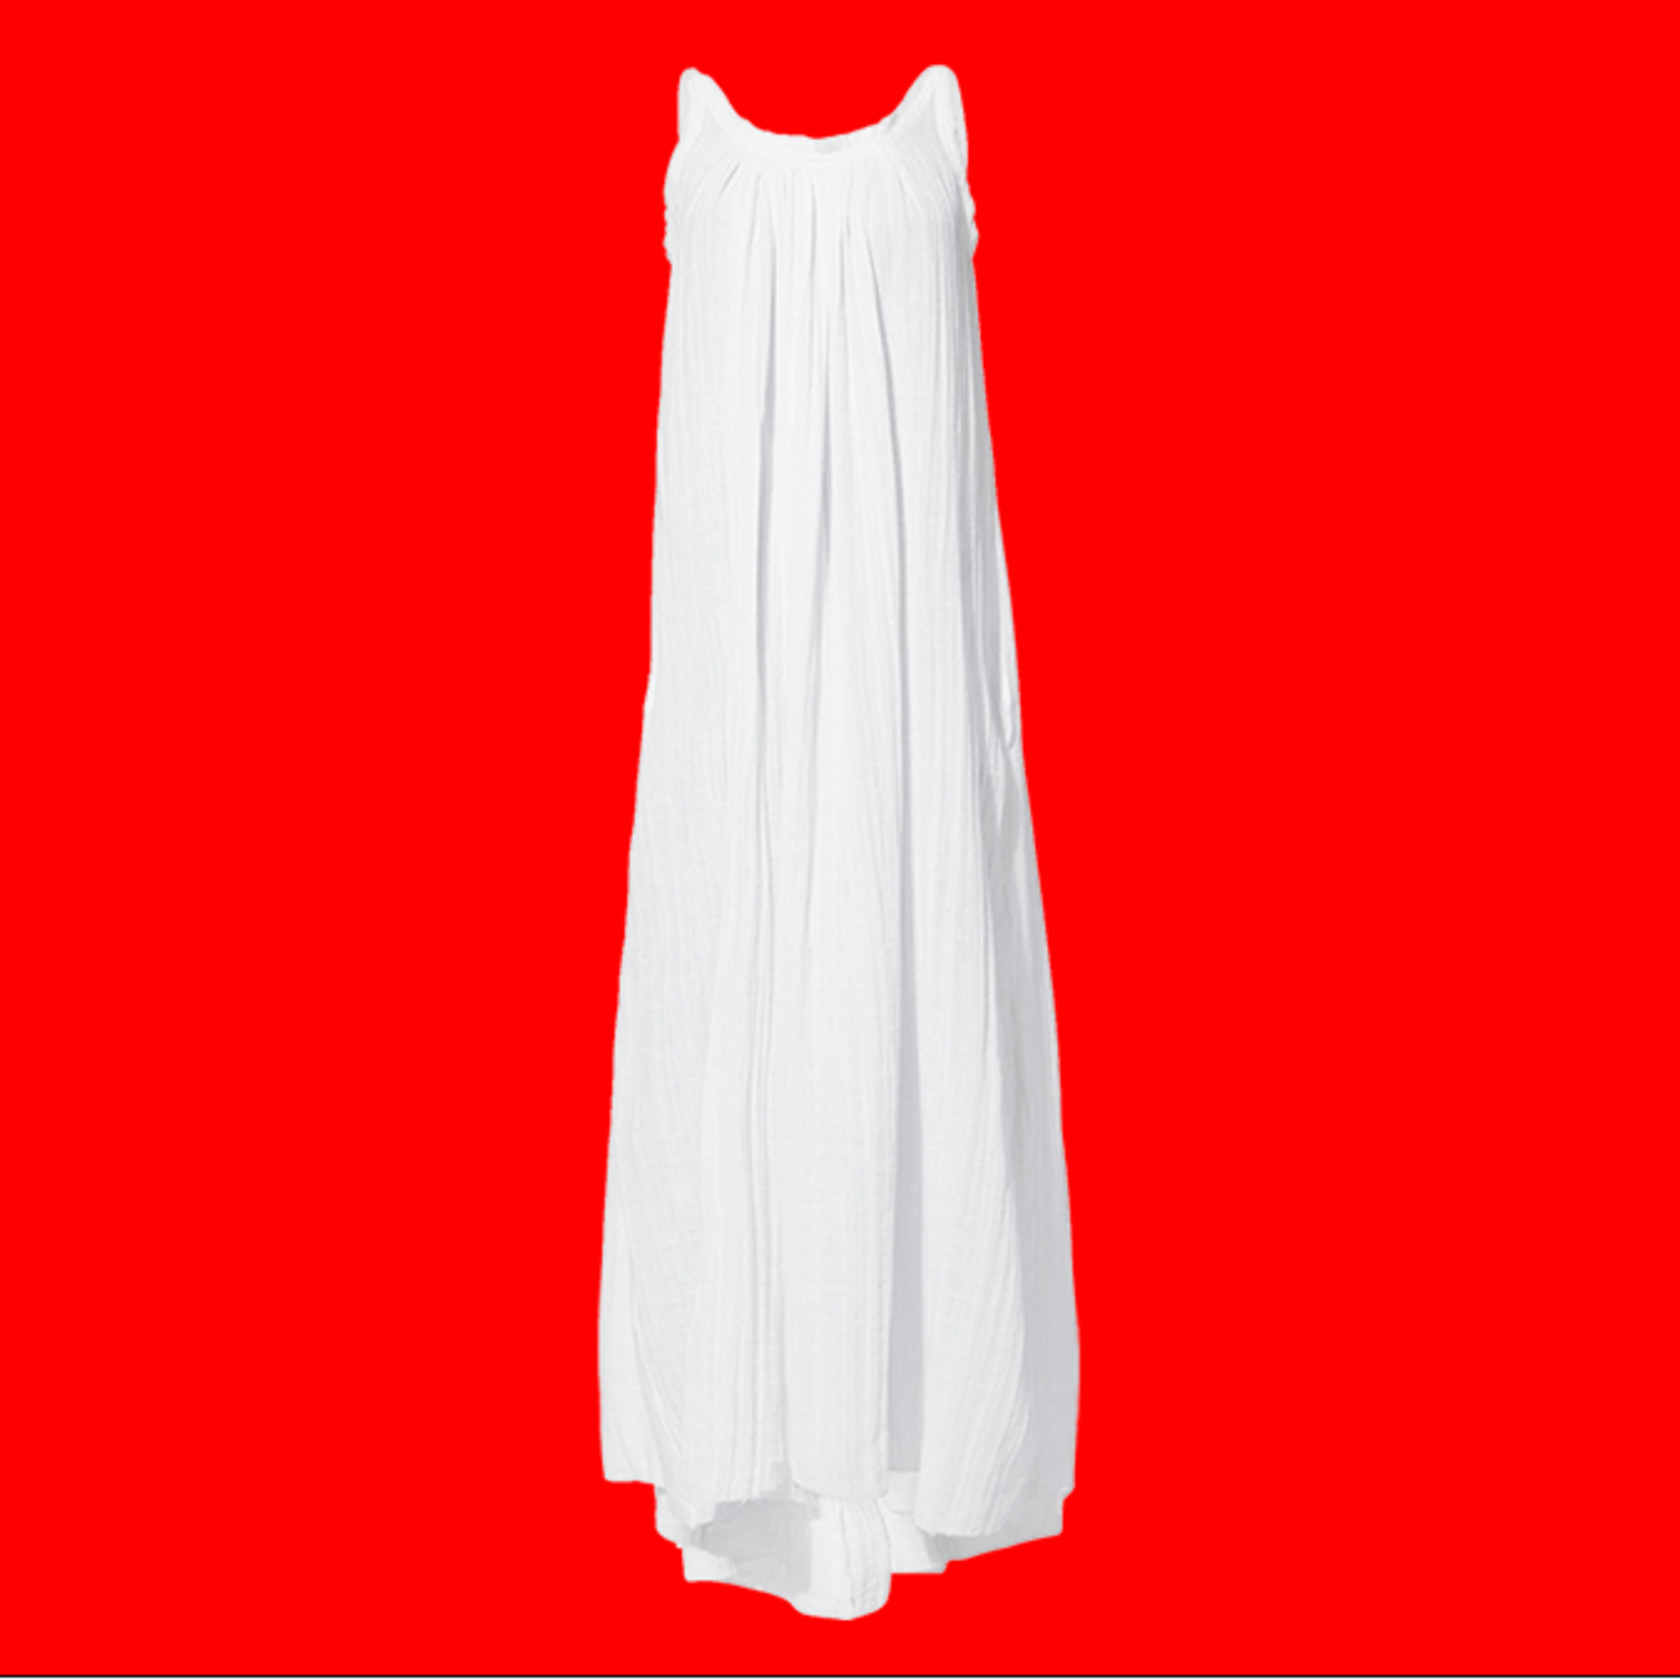 White dress square